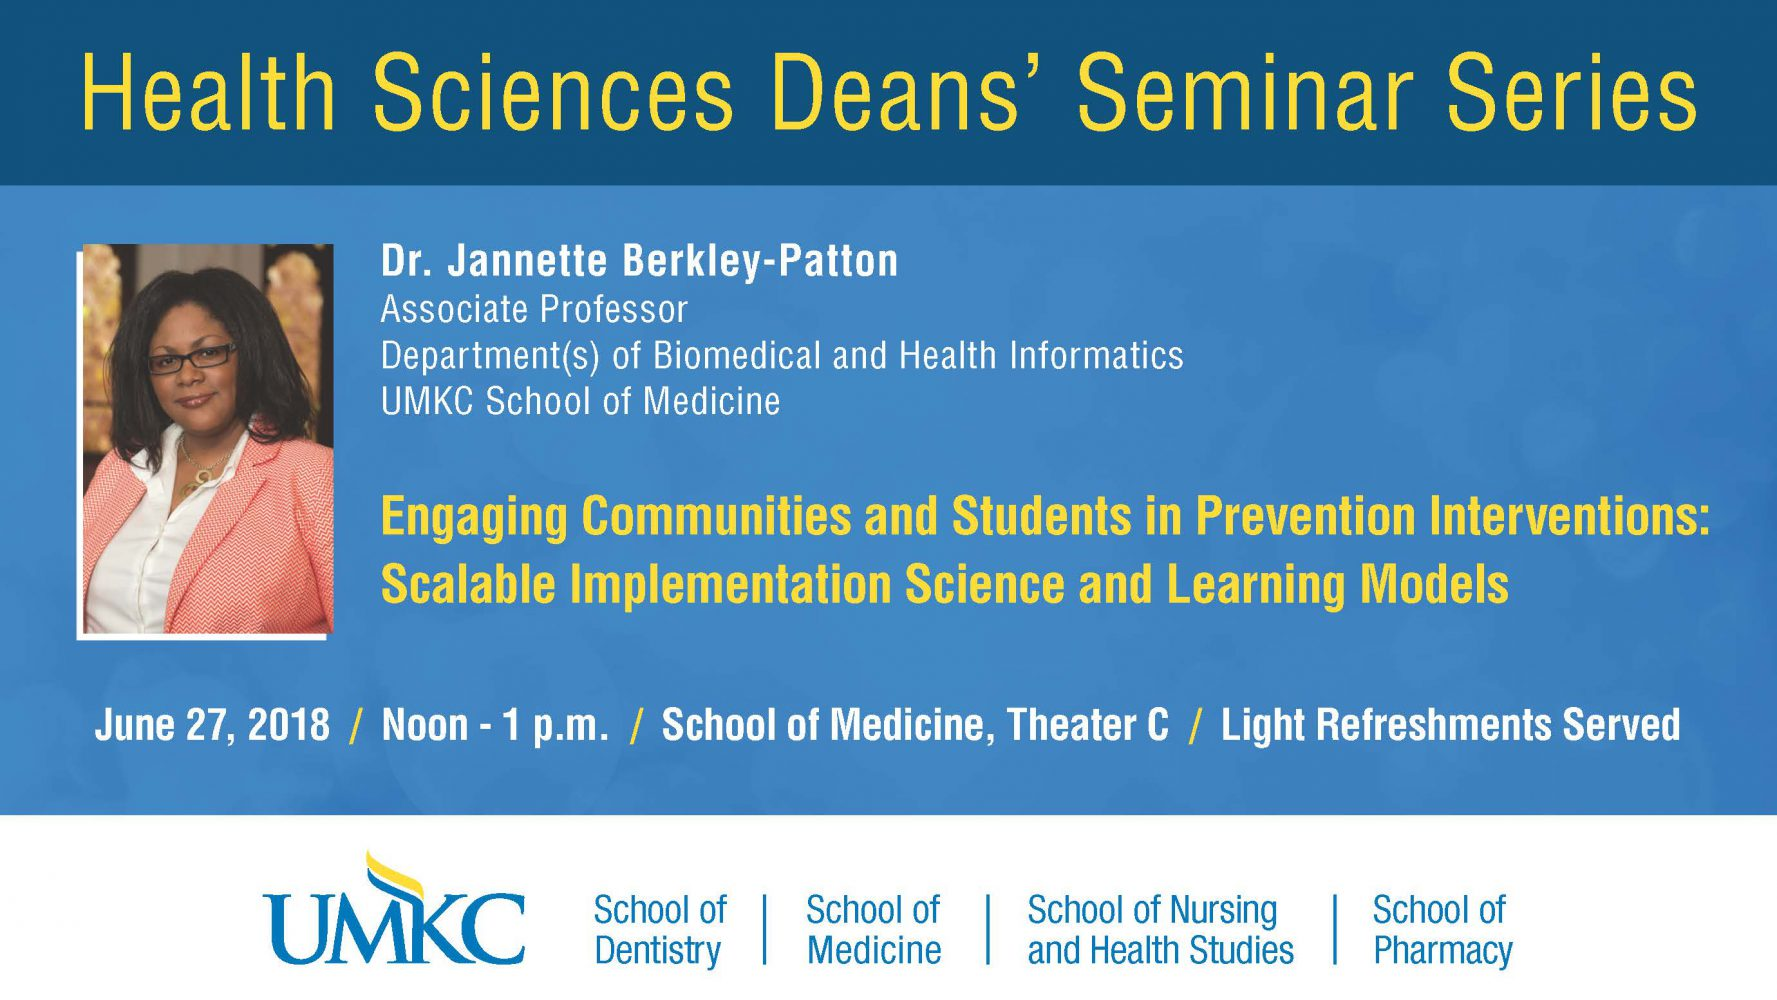 Health Sciences Deans' Seminar Series - Engaging Communities and Students in Prevention Interventions: Scalable Implementation Science and Learning Models - By Dr. Jannette Berkley-Patton